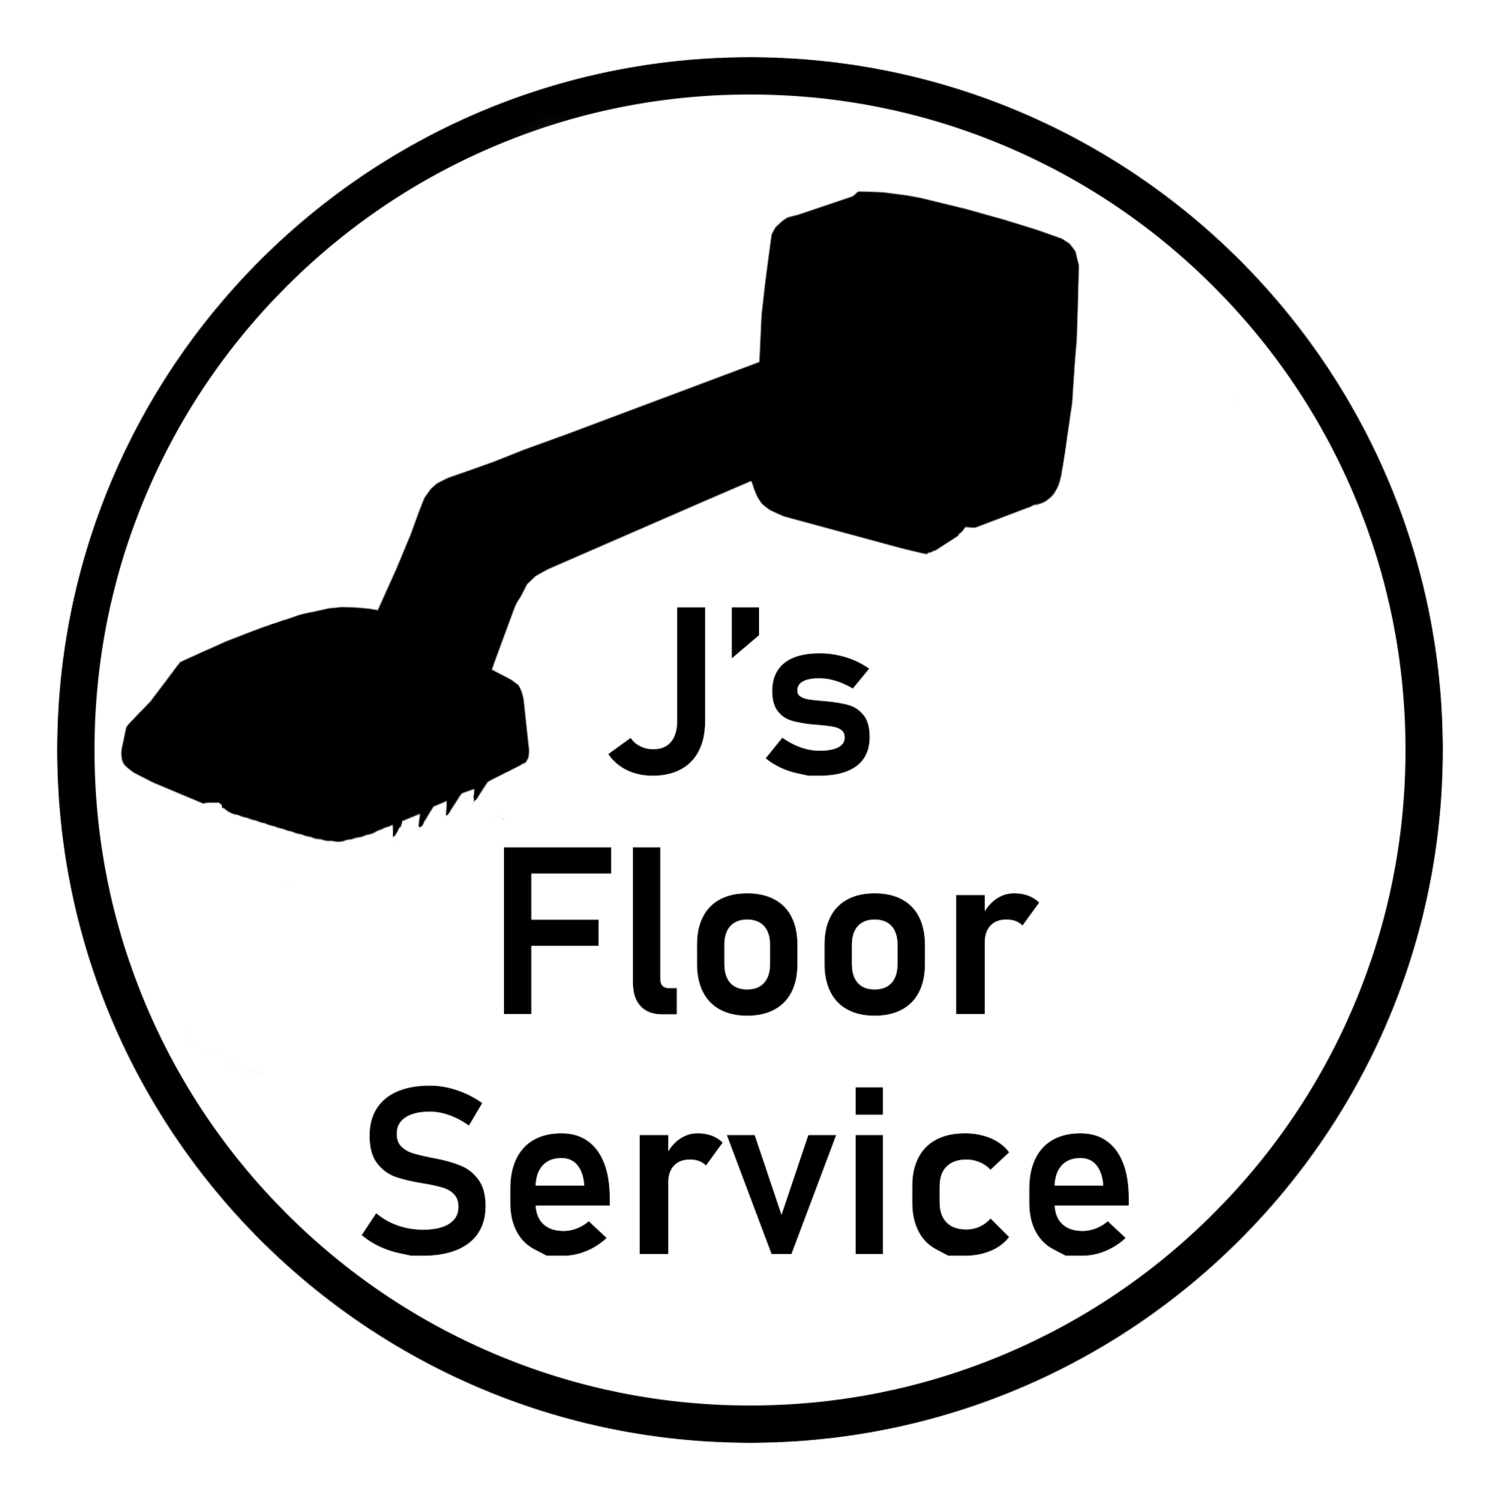 Carpet Stretching, Repair and More! - J's Floor Service